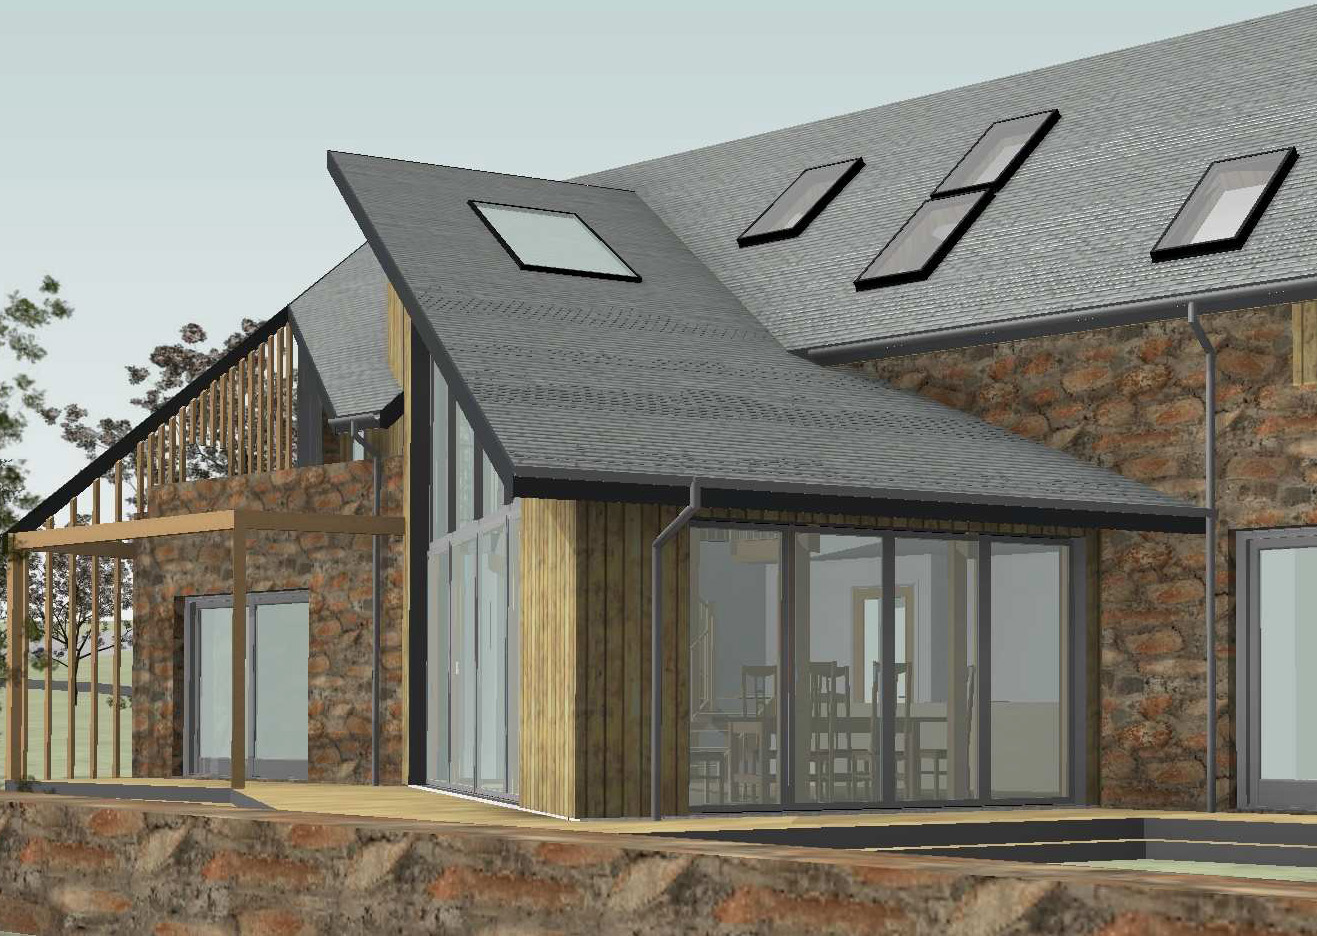 Fakro Roof Windows For Aberdeenshire Passivhaus Self Build